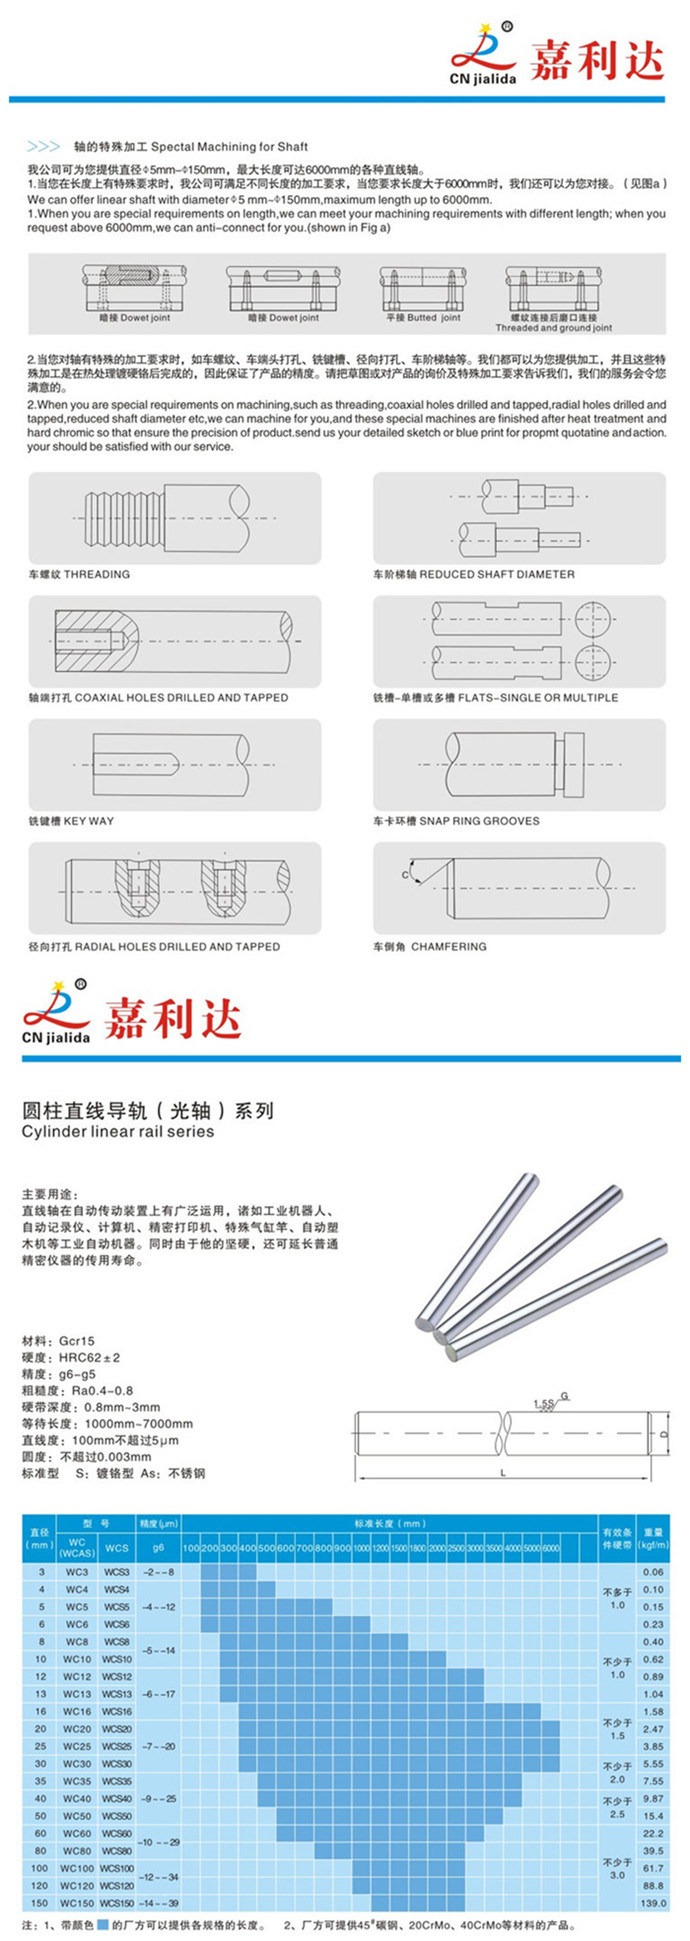 Factory Wholesales Chromed Suj2 Steel Rods for CNC Machining (WCS SFC series 80mm)